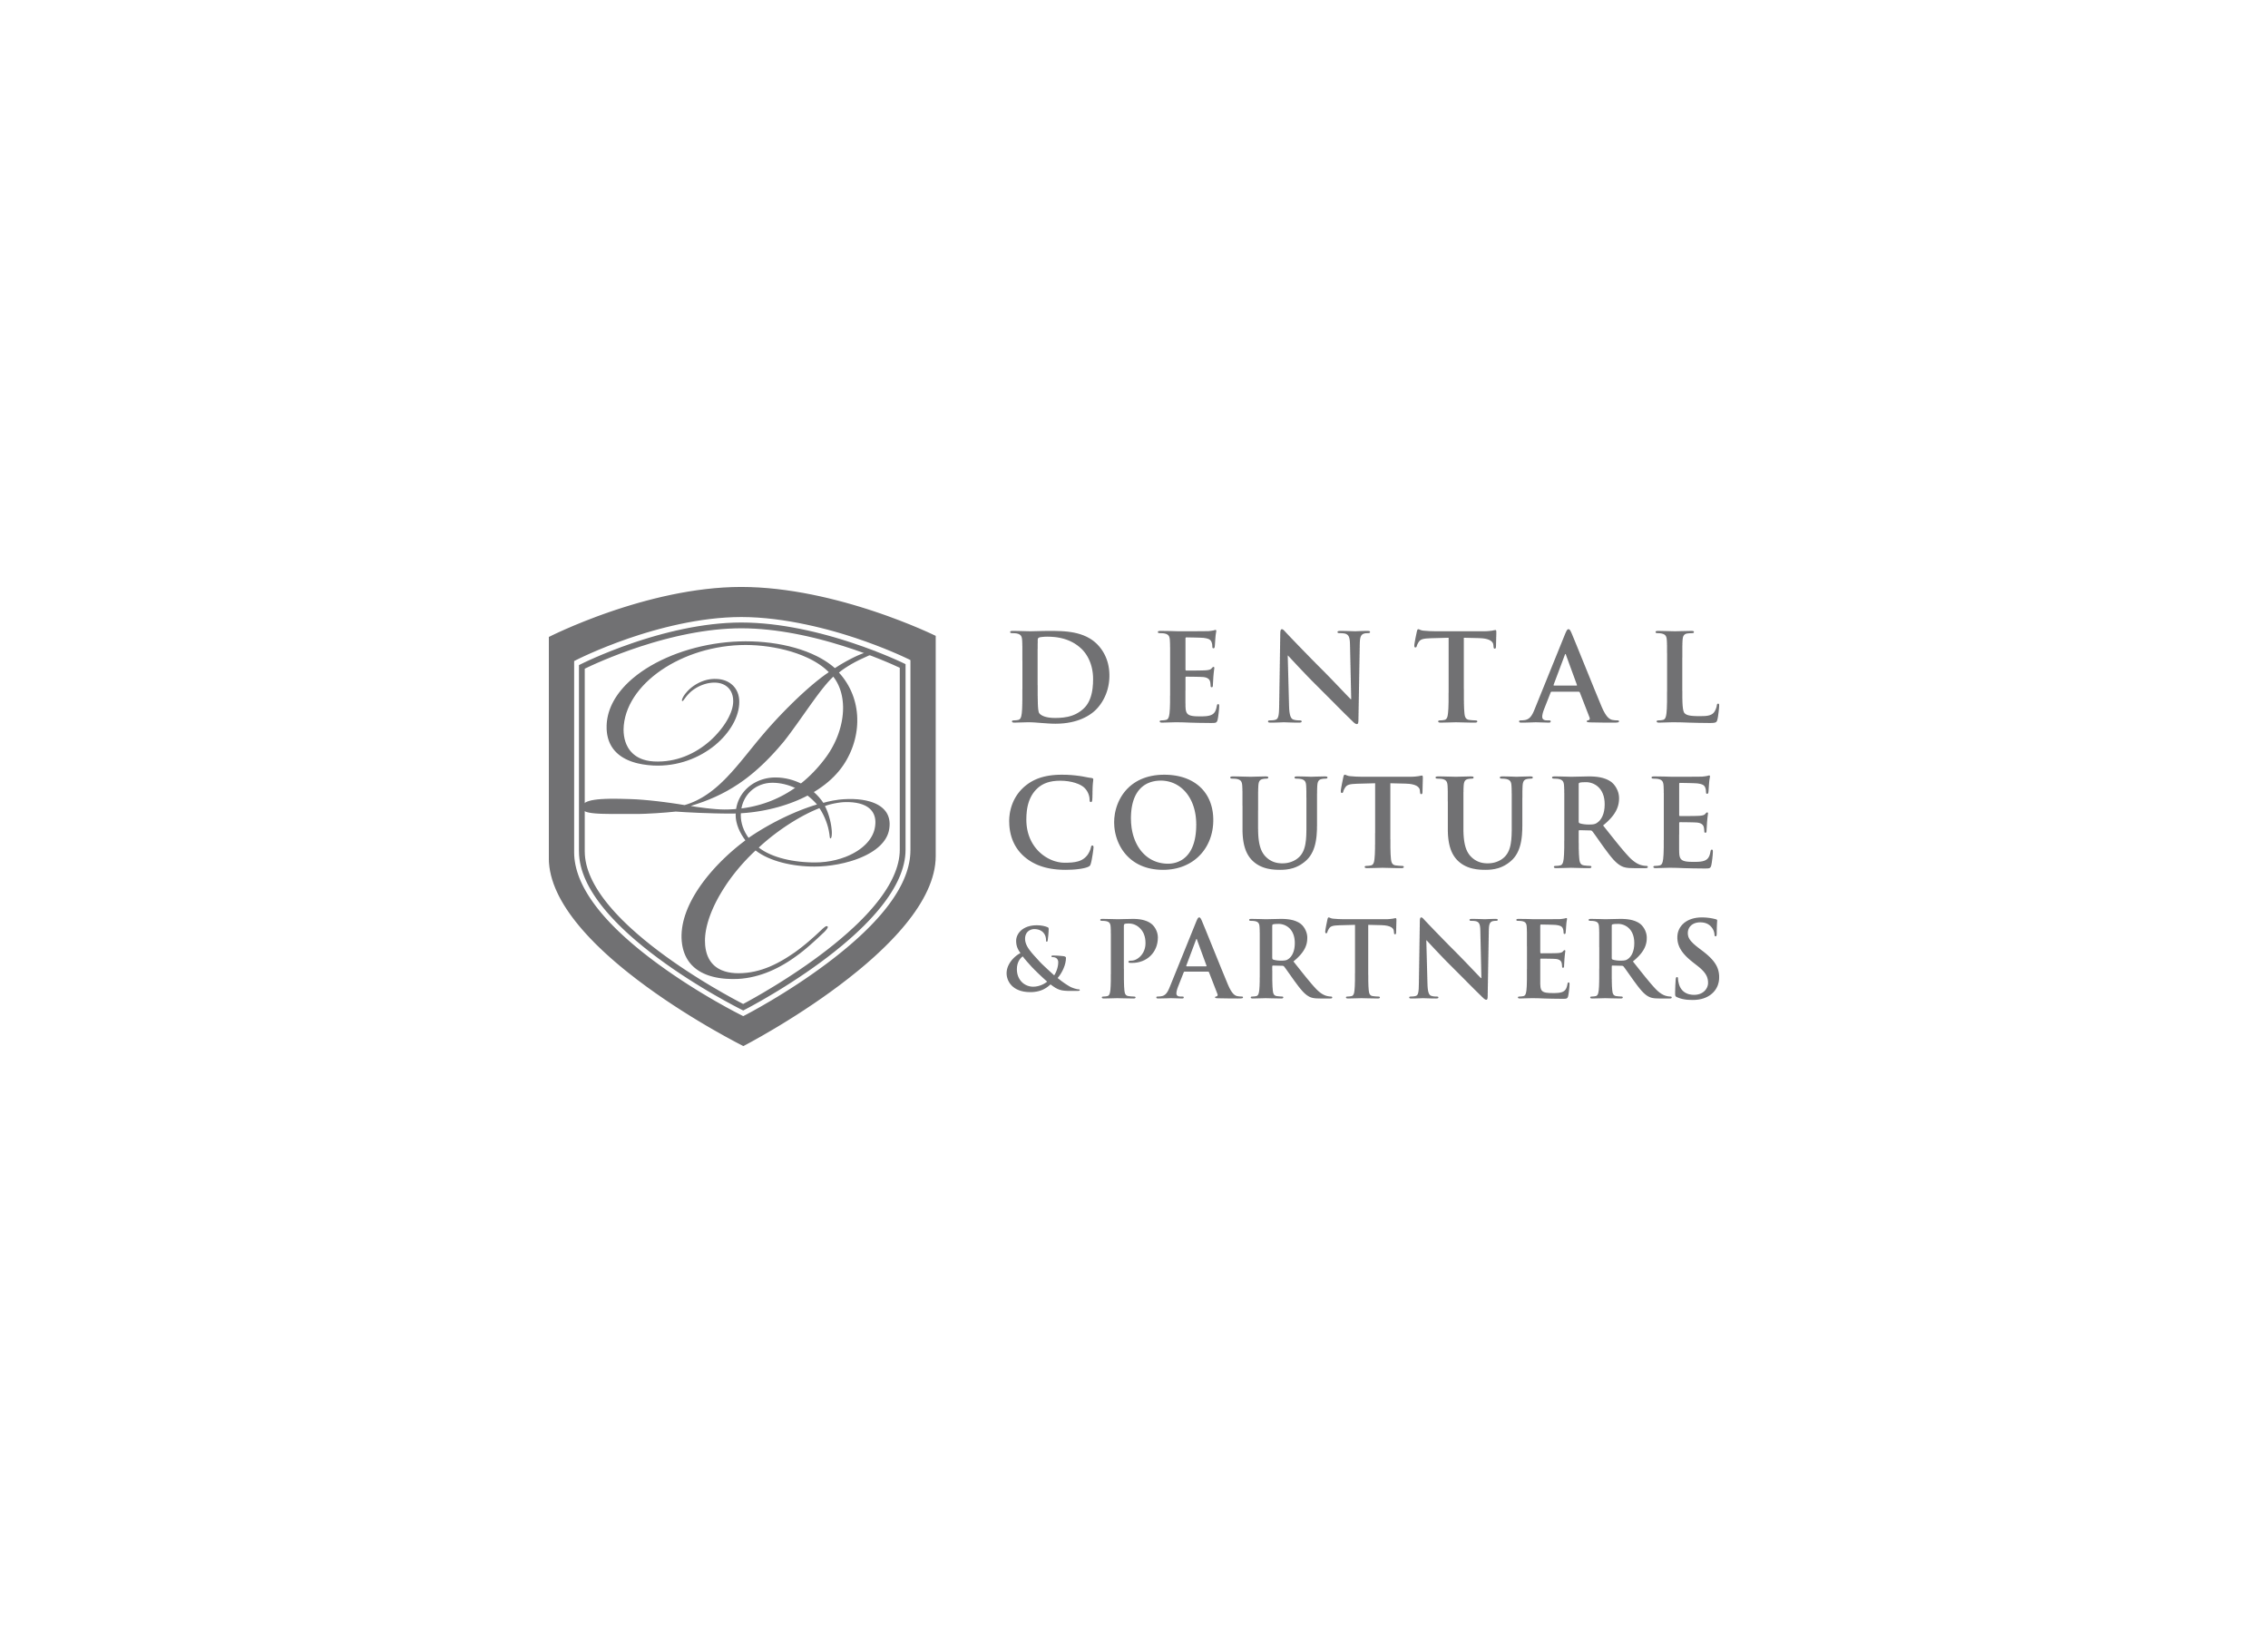 Dental Couture logo